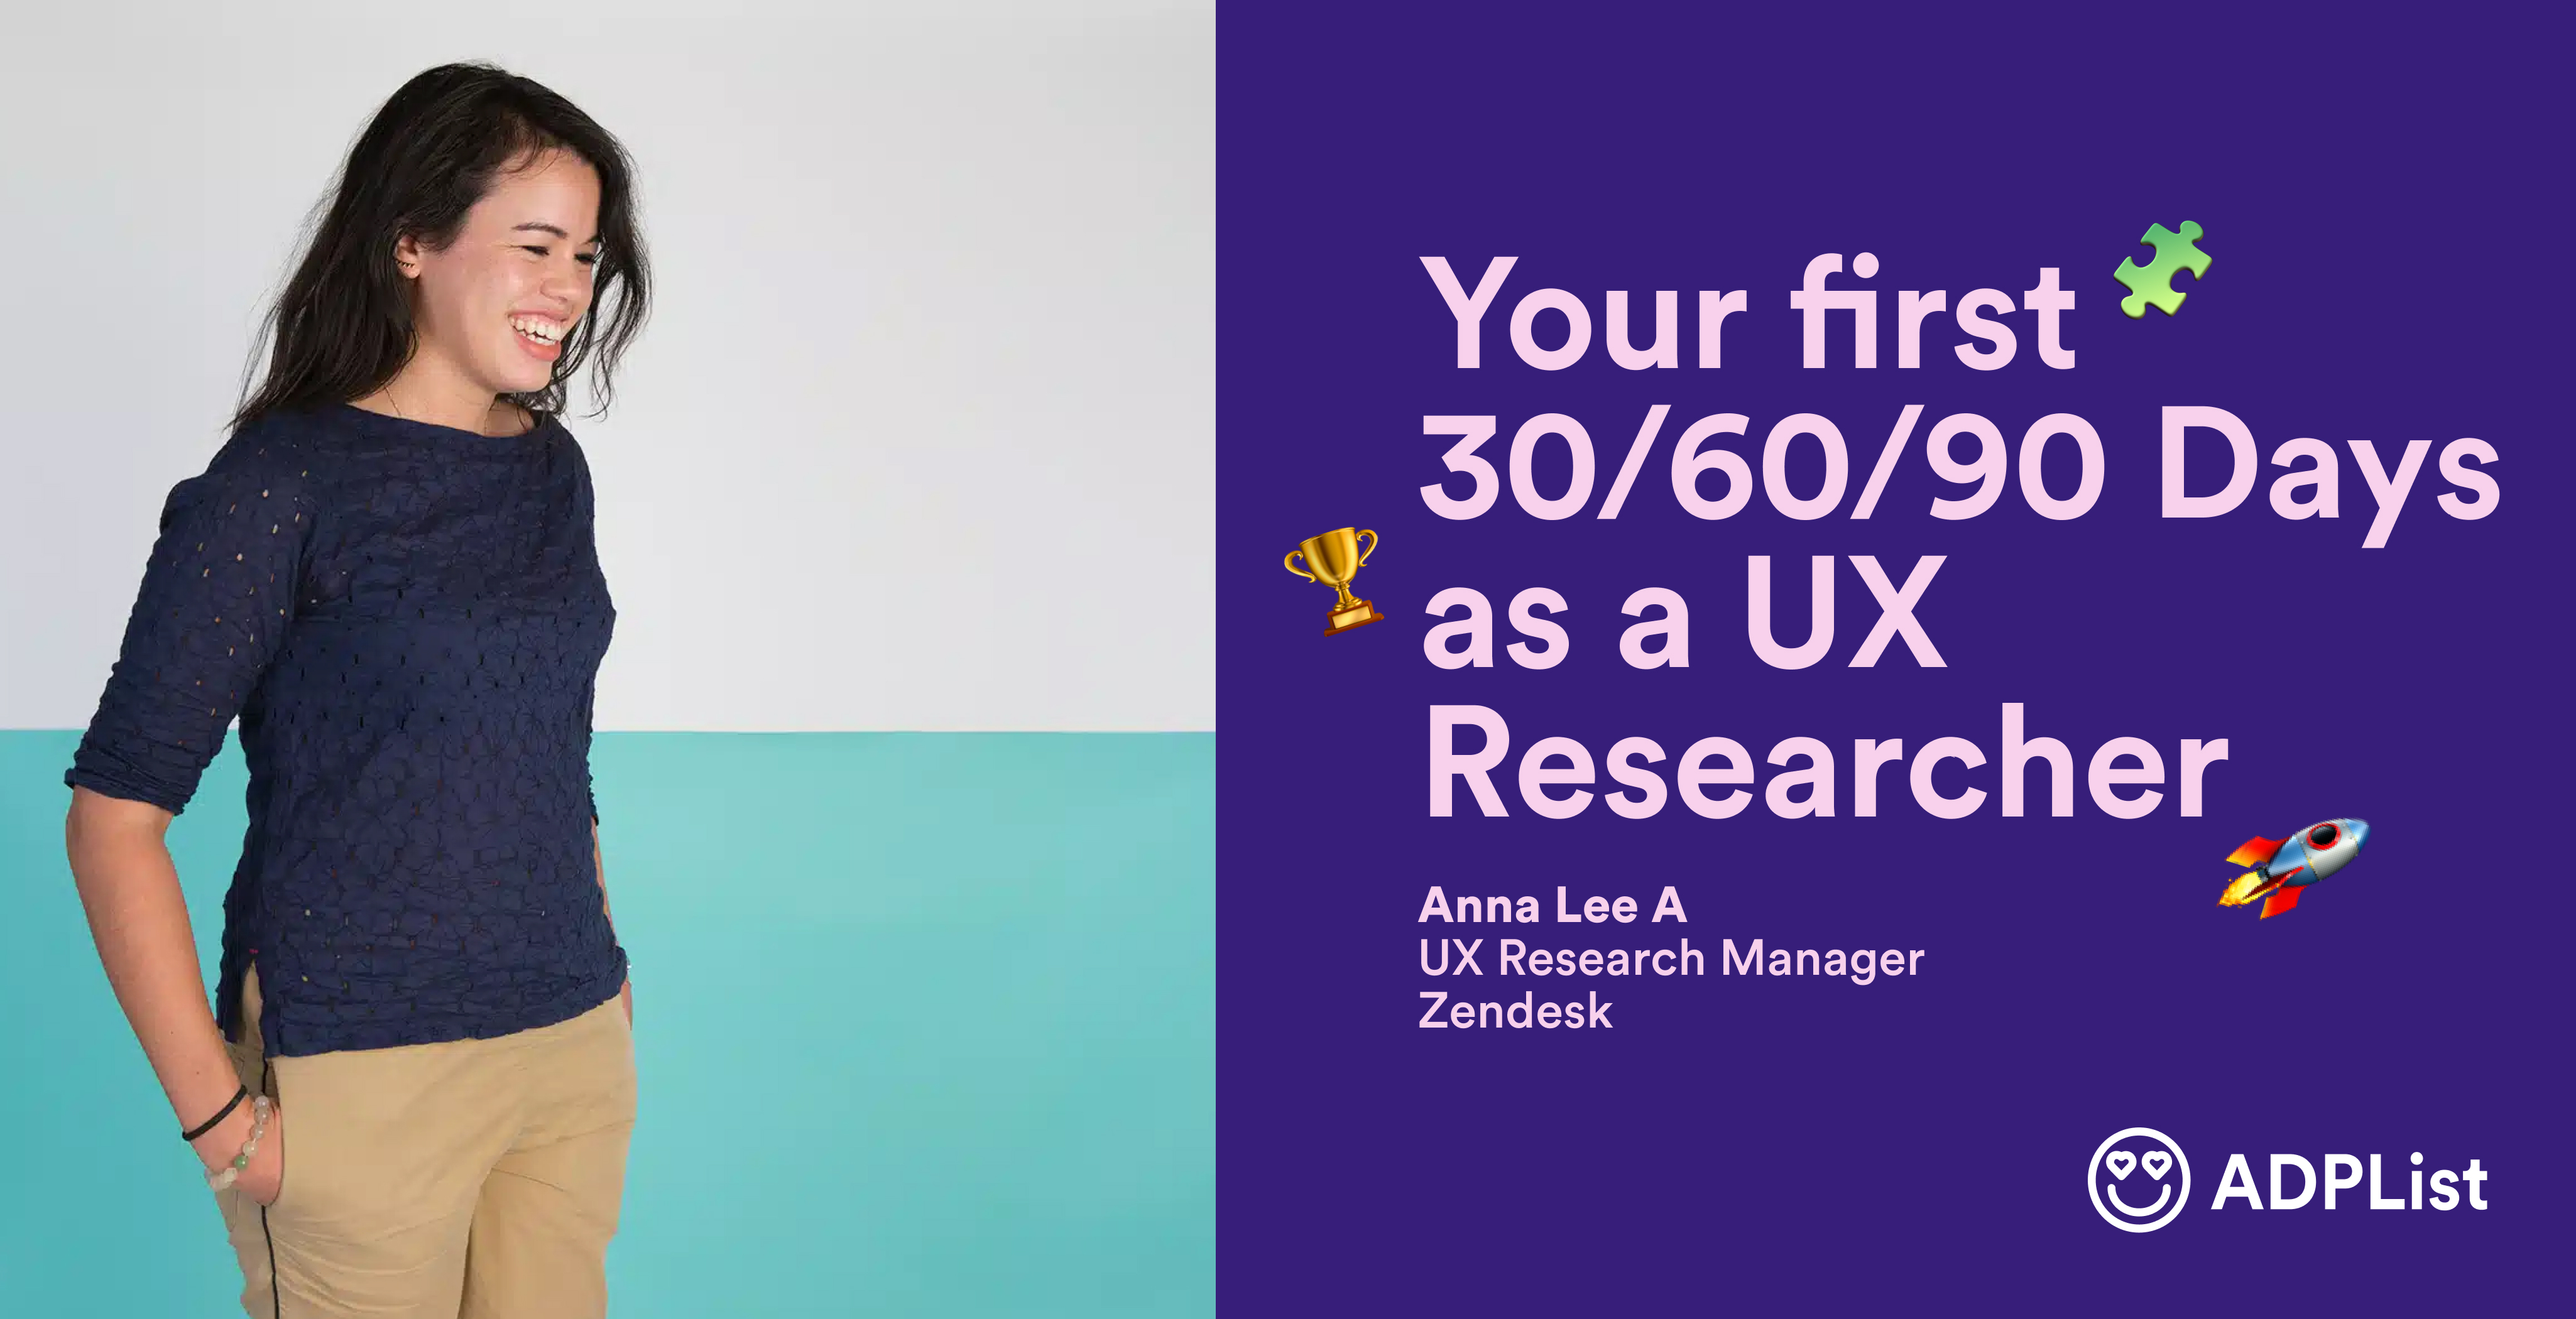 Your first 30/60/90 days as a UX Researcher